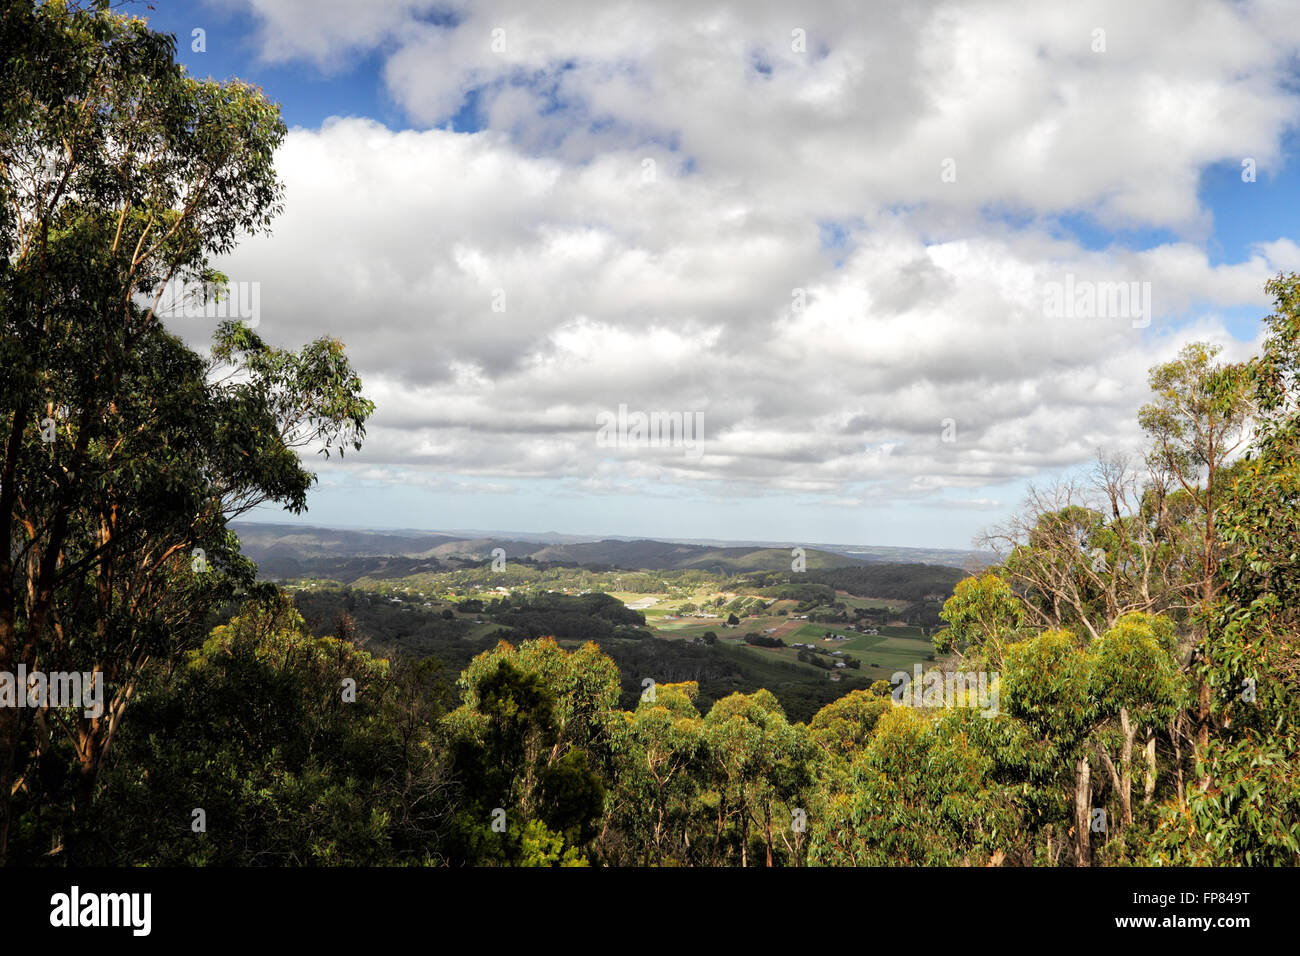 View into the Picadilly Valley from Mount Lofty near Adelaide, South Australia, Australia. - Stock Image